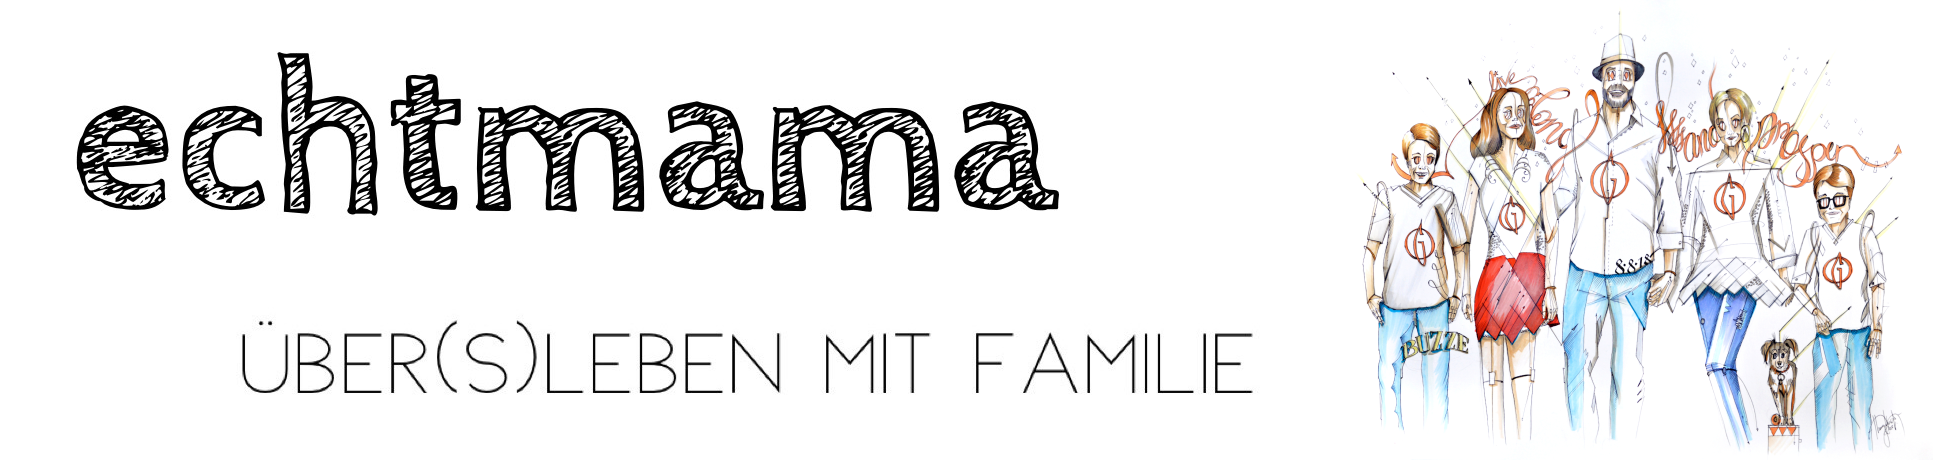 www.echtmama.at